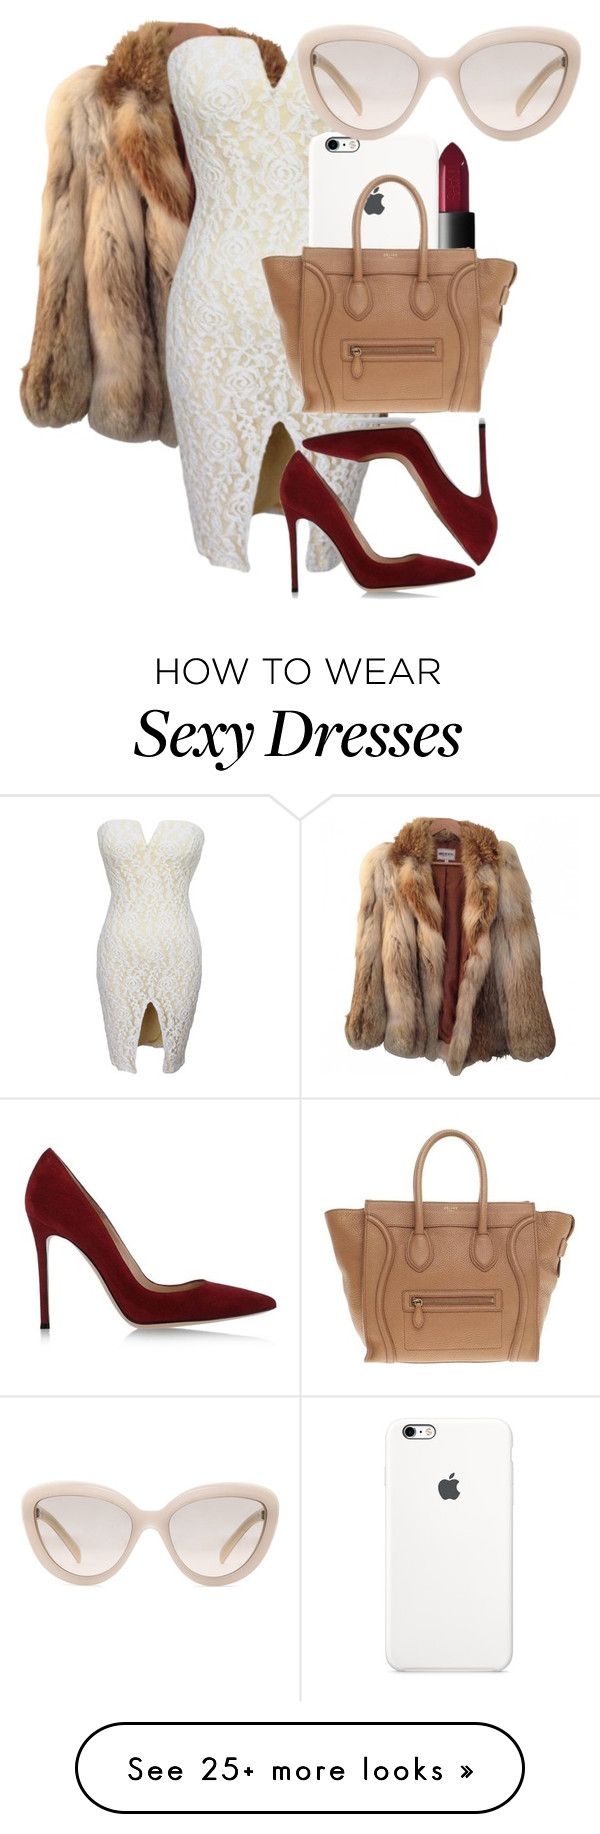 """Untitled #198"" by perfectlyebonix on Polyvore featuring American Retro, Gianvito Rossi, NARS Cosmetics, CÉLINE, Prada, women's clothing, women, female, woman and misses"